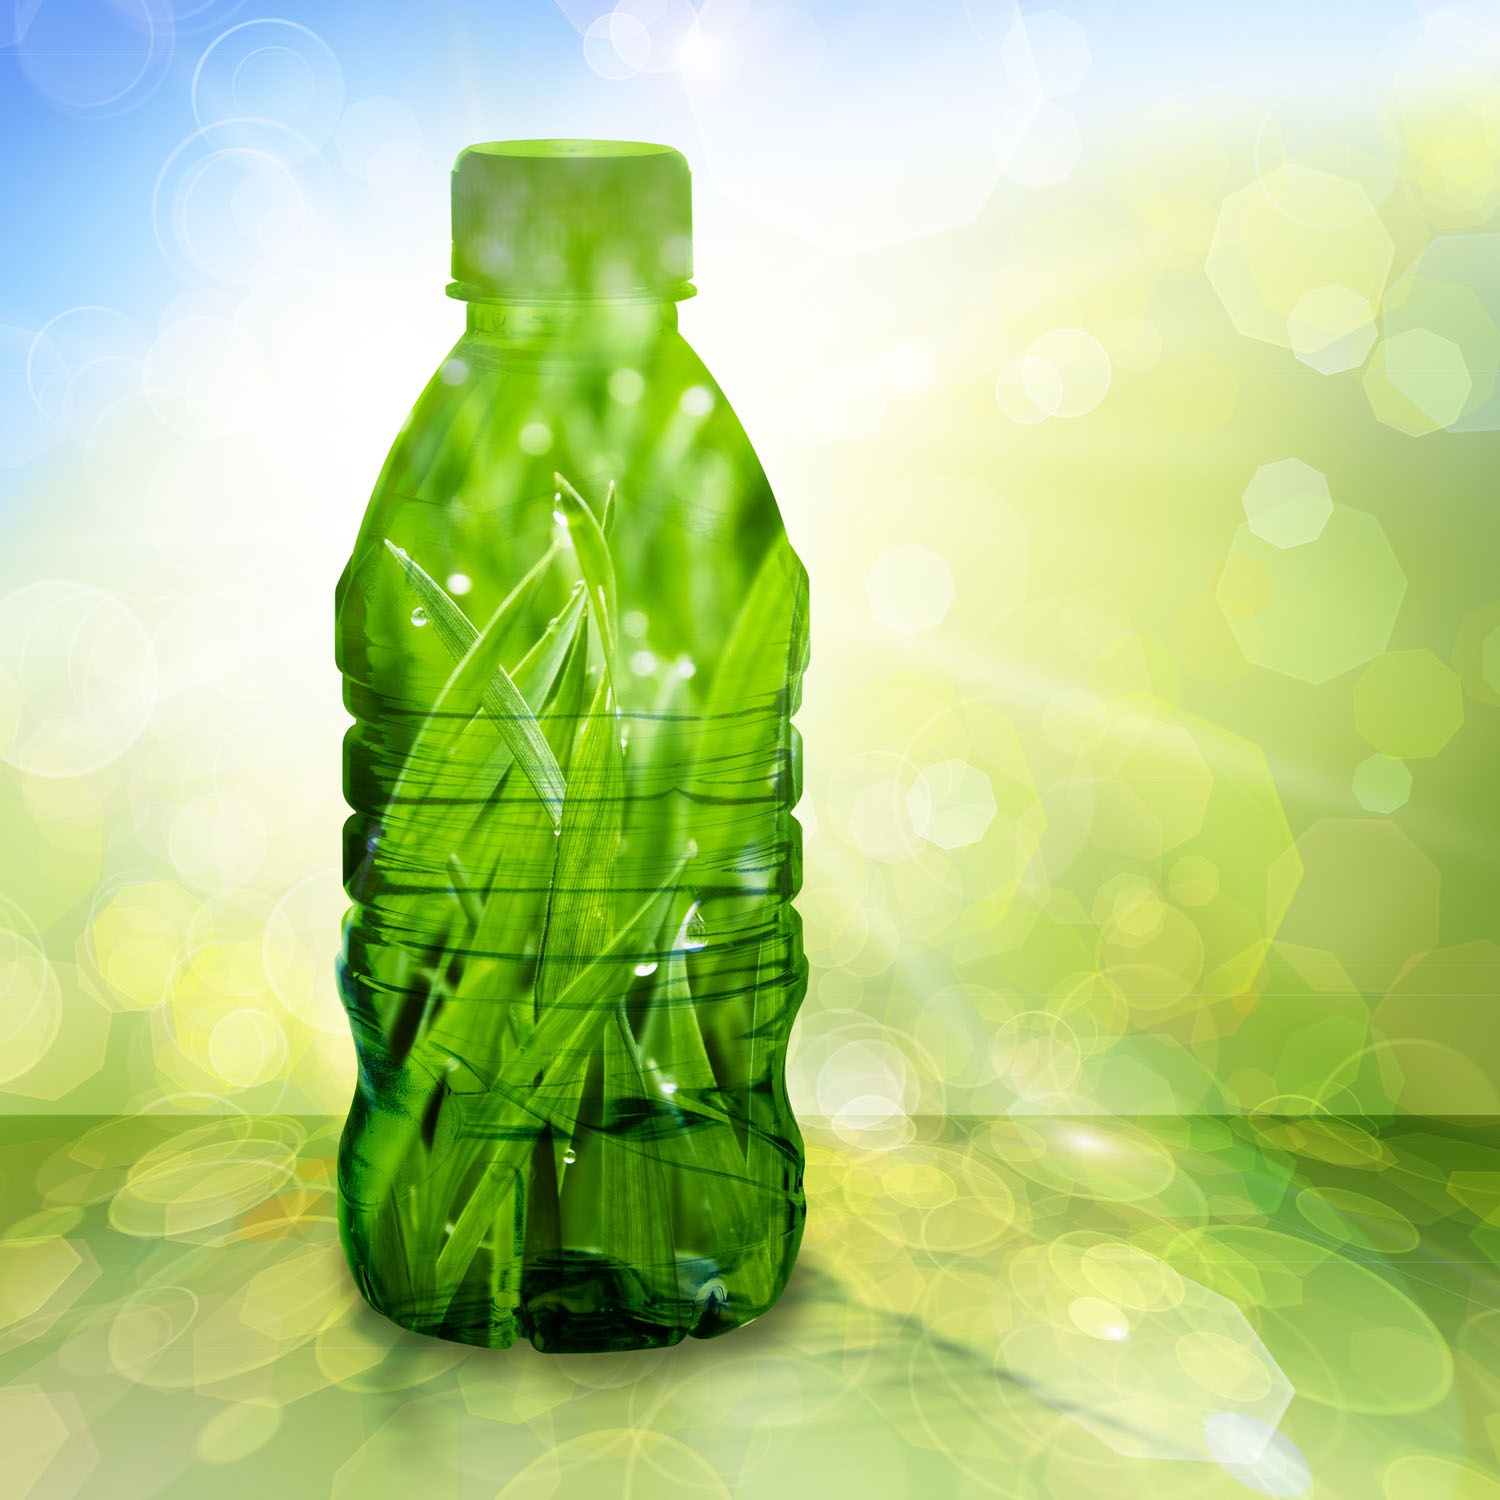 SIGNIFICANT GROWTH EXPECTED FOR BIOPLASTICS BY 2018 ...